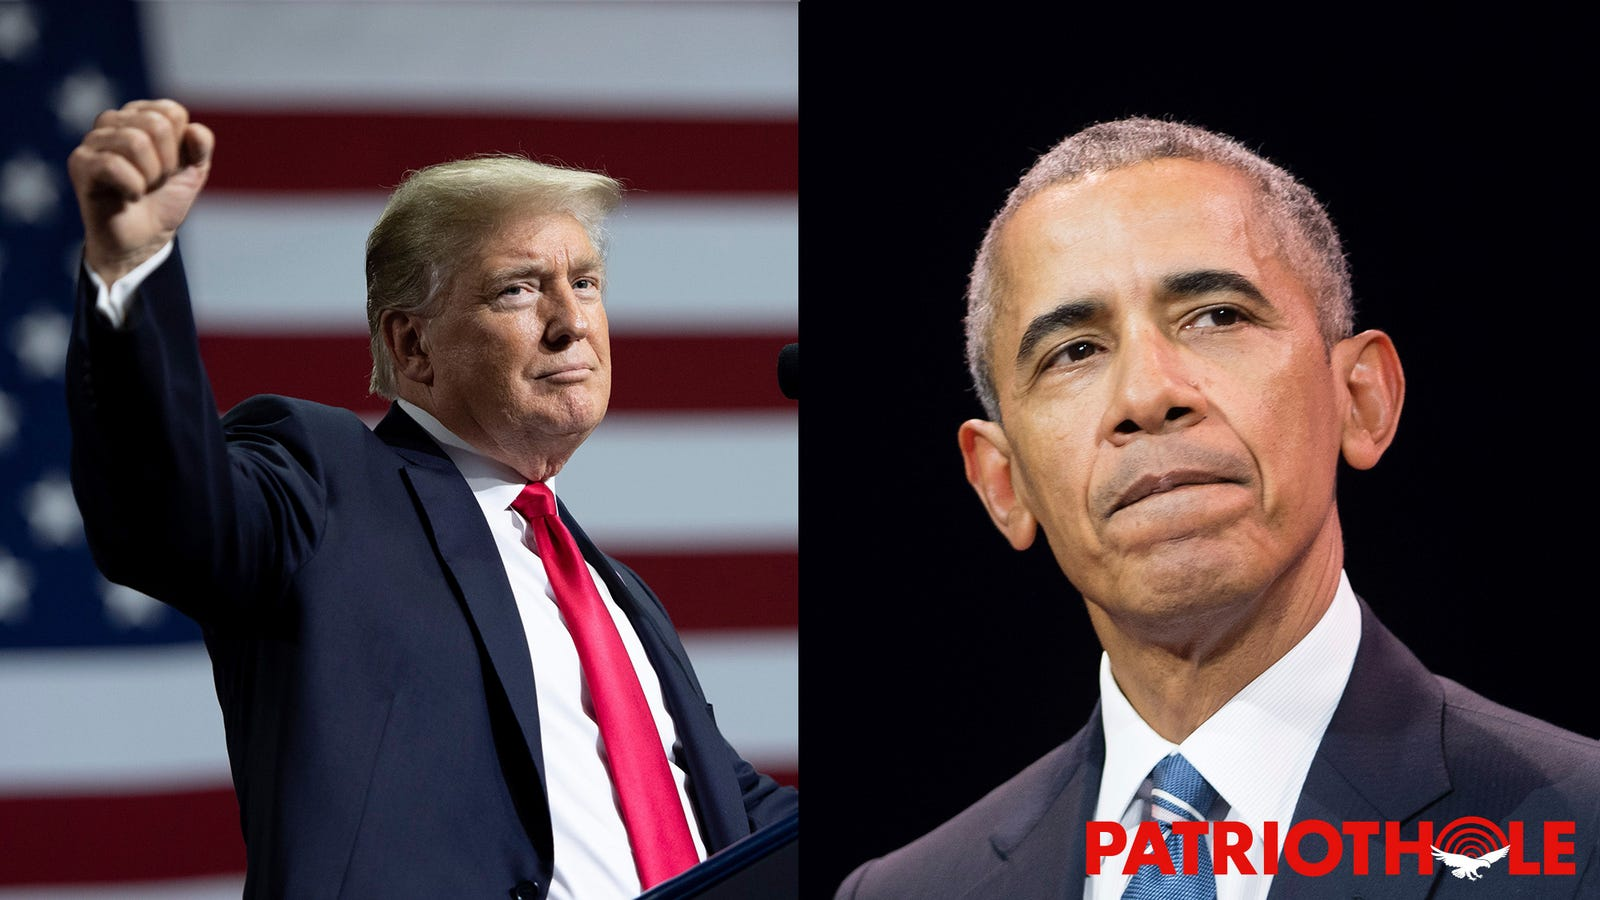 Liberal Hypocrisy: When Obama Was President Democrats Were Okay With Him Being President, But When Trump Is President Suddenly It's Wrong To Be President?